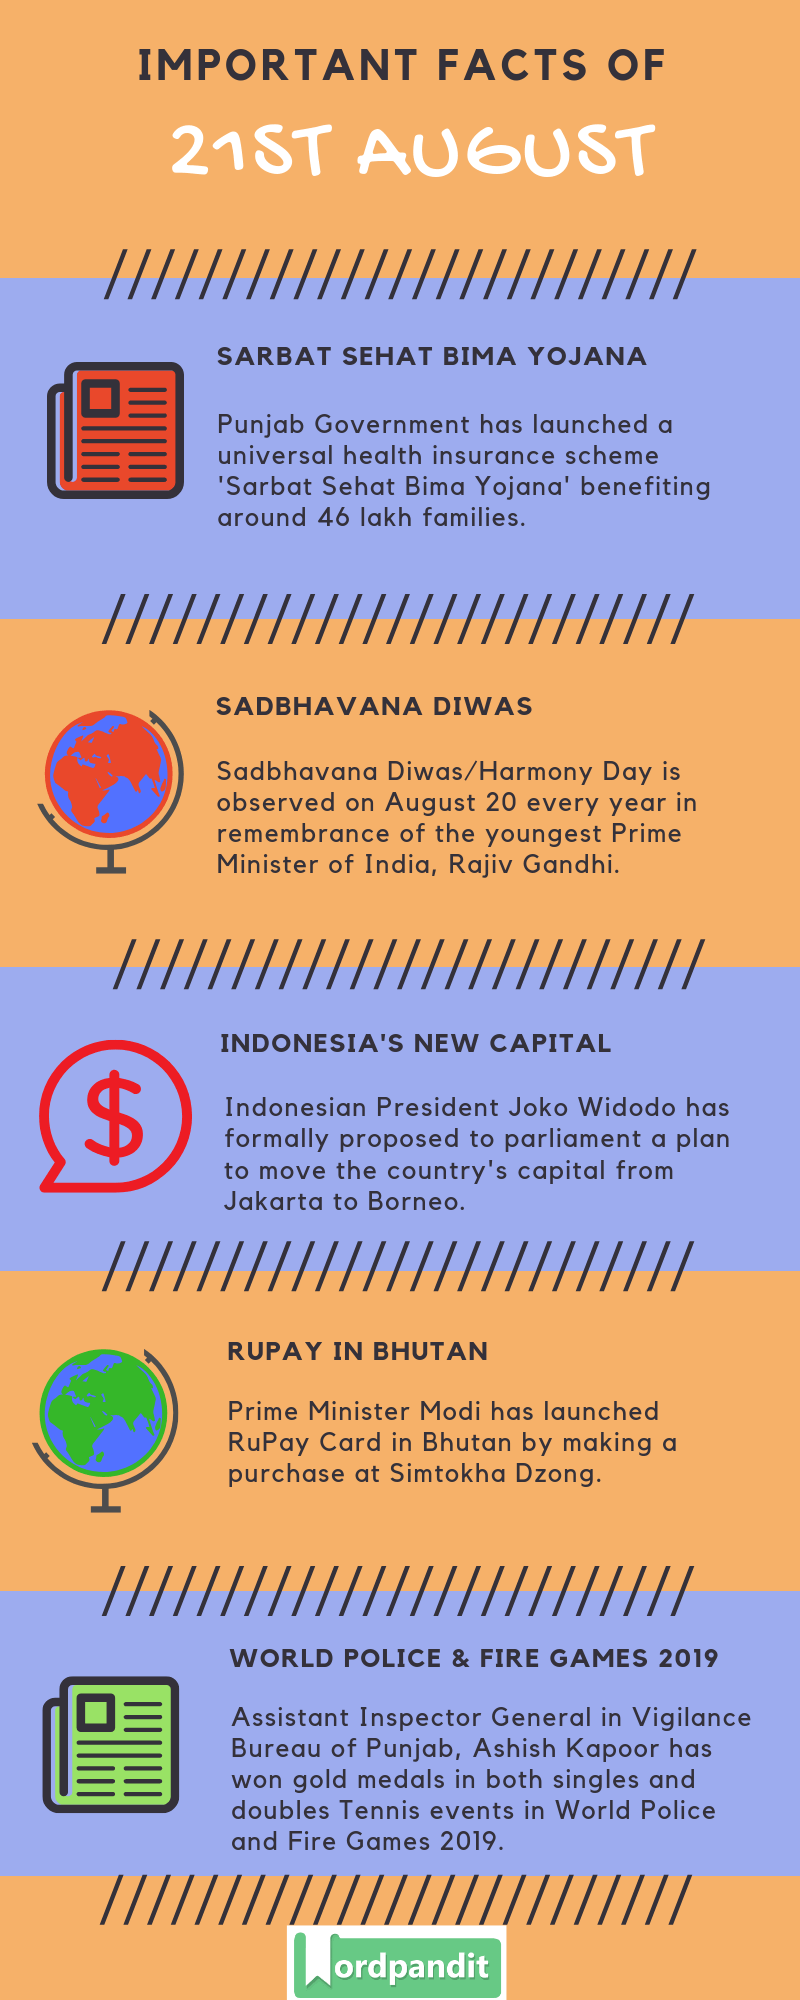 Daily Current Affairs 21 August 2019 Current Affairs Quiz 21 August 2019 Current Affairs Infographic